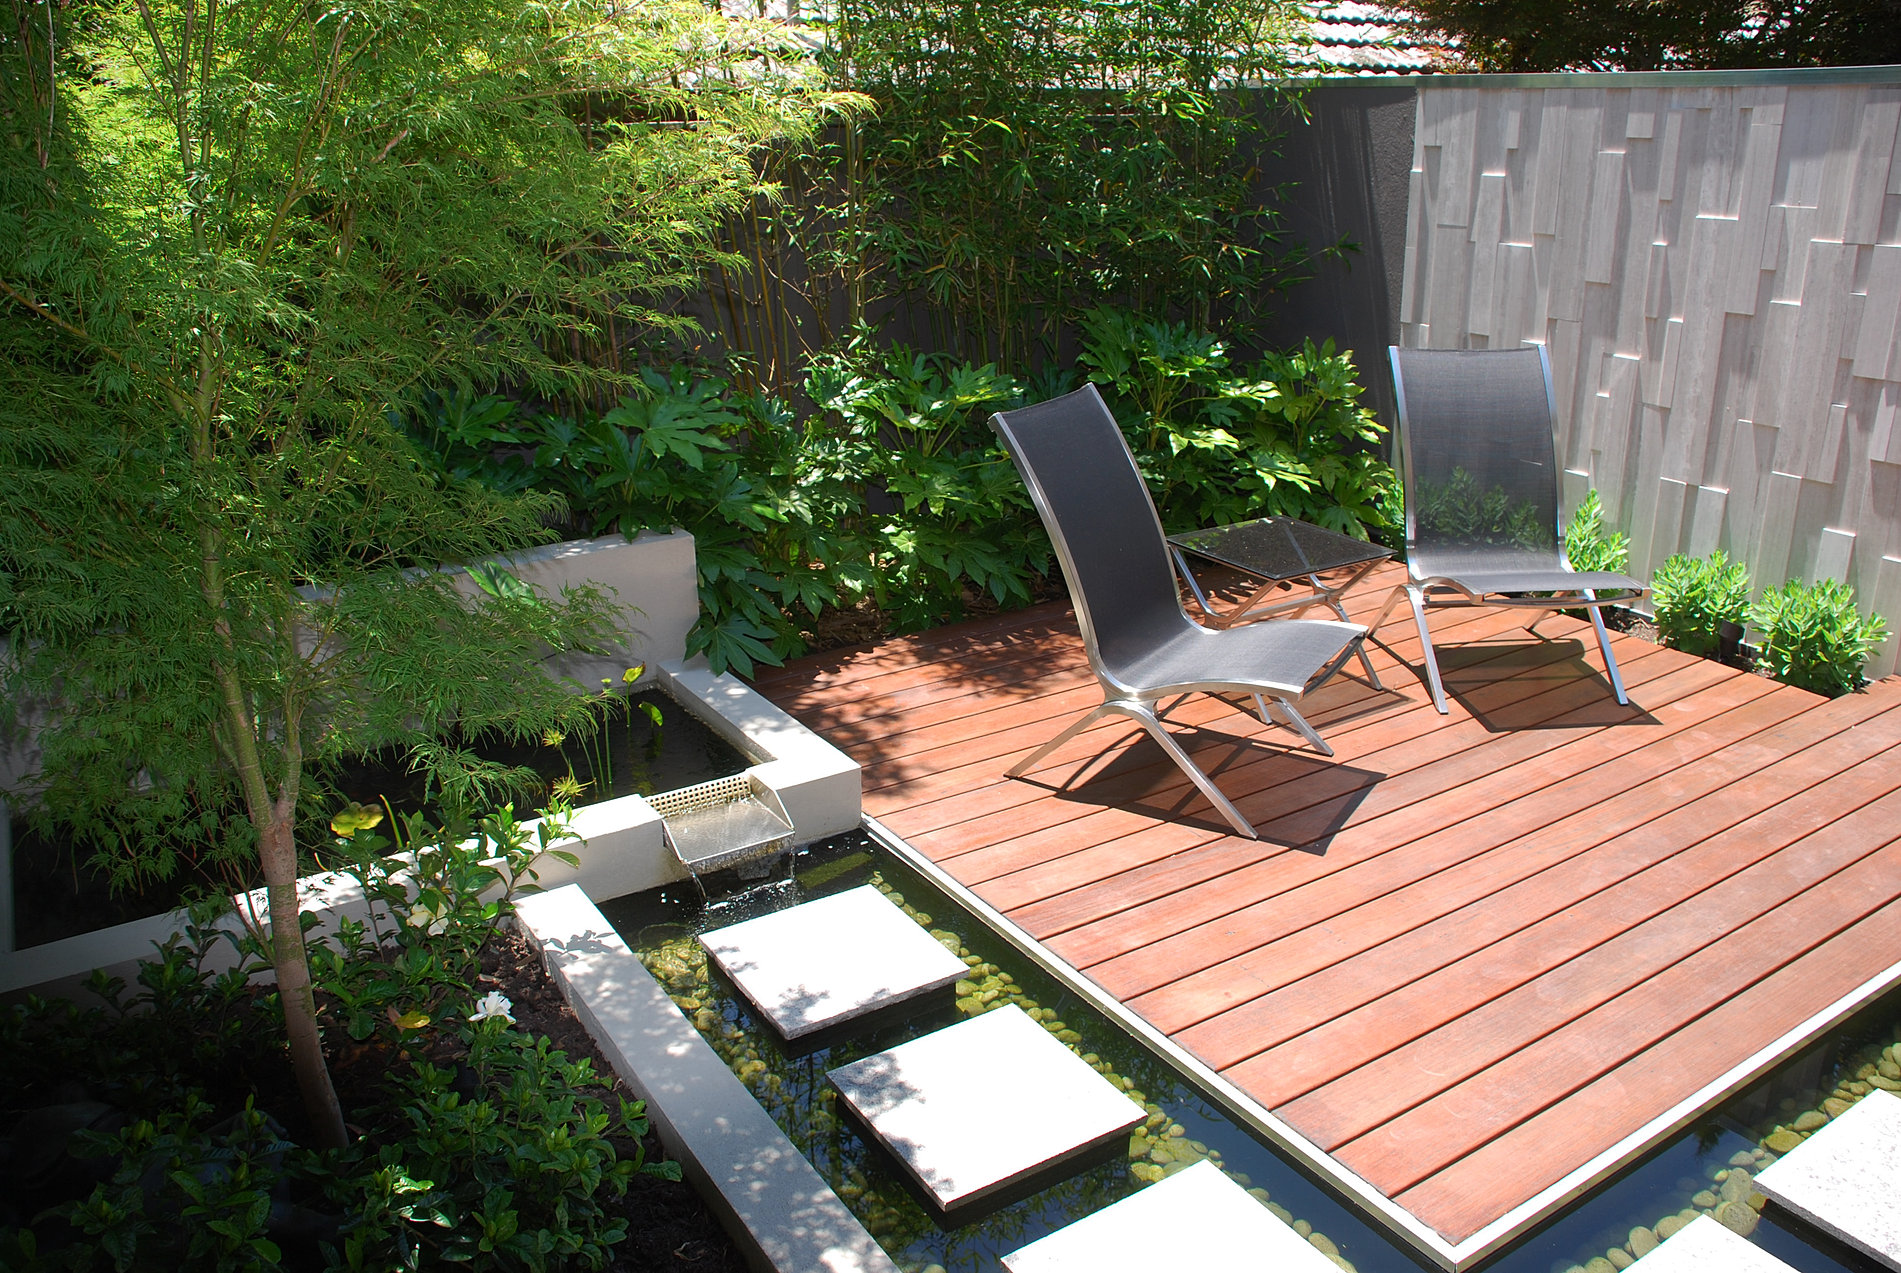 Landscaping melbourne melbourne landscape design for Landscape construction melbourne